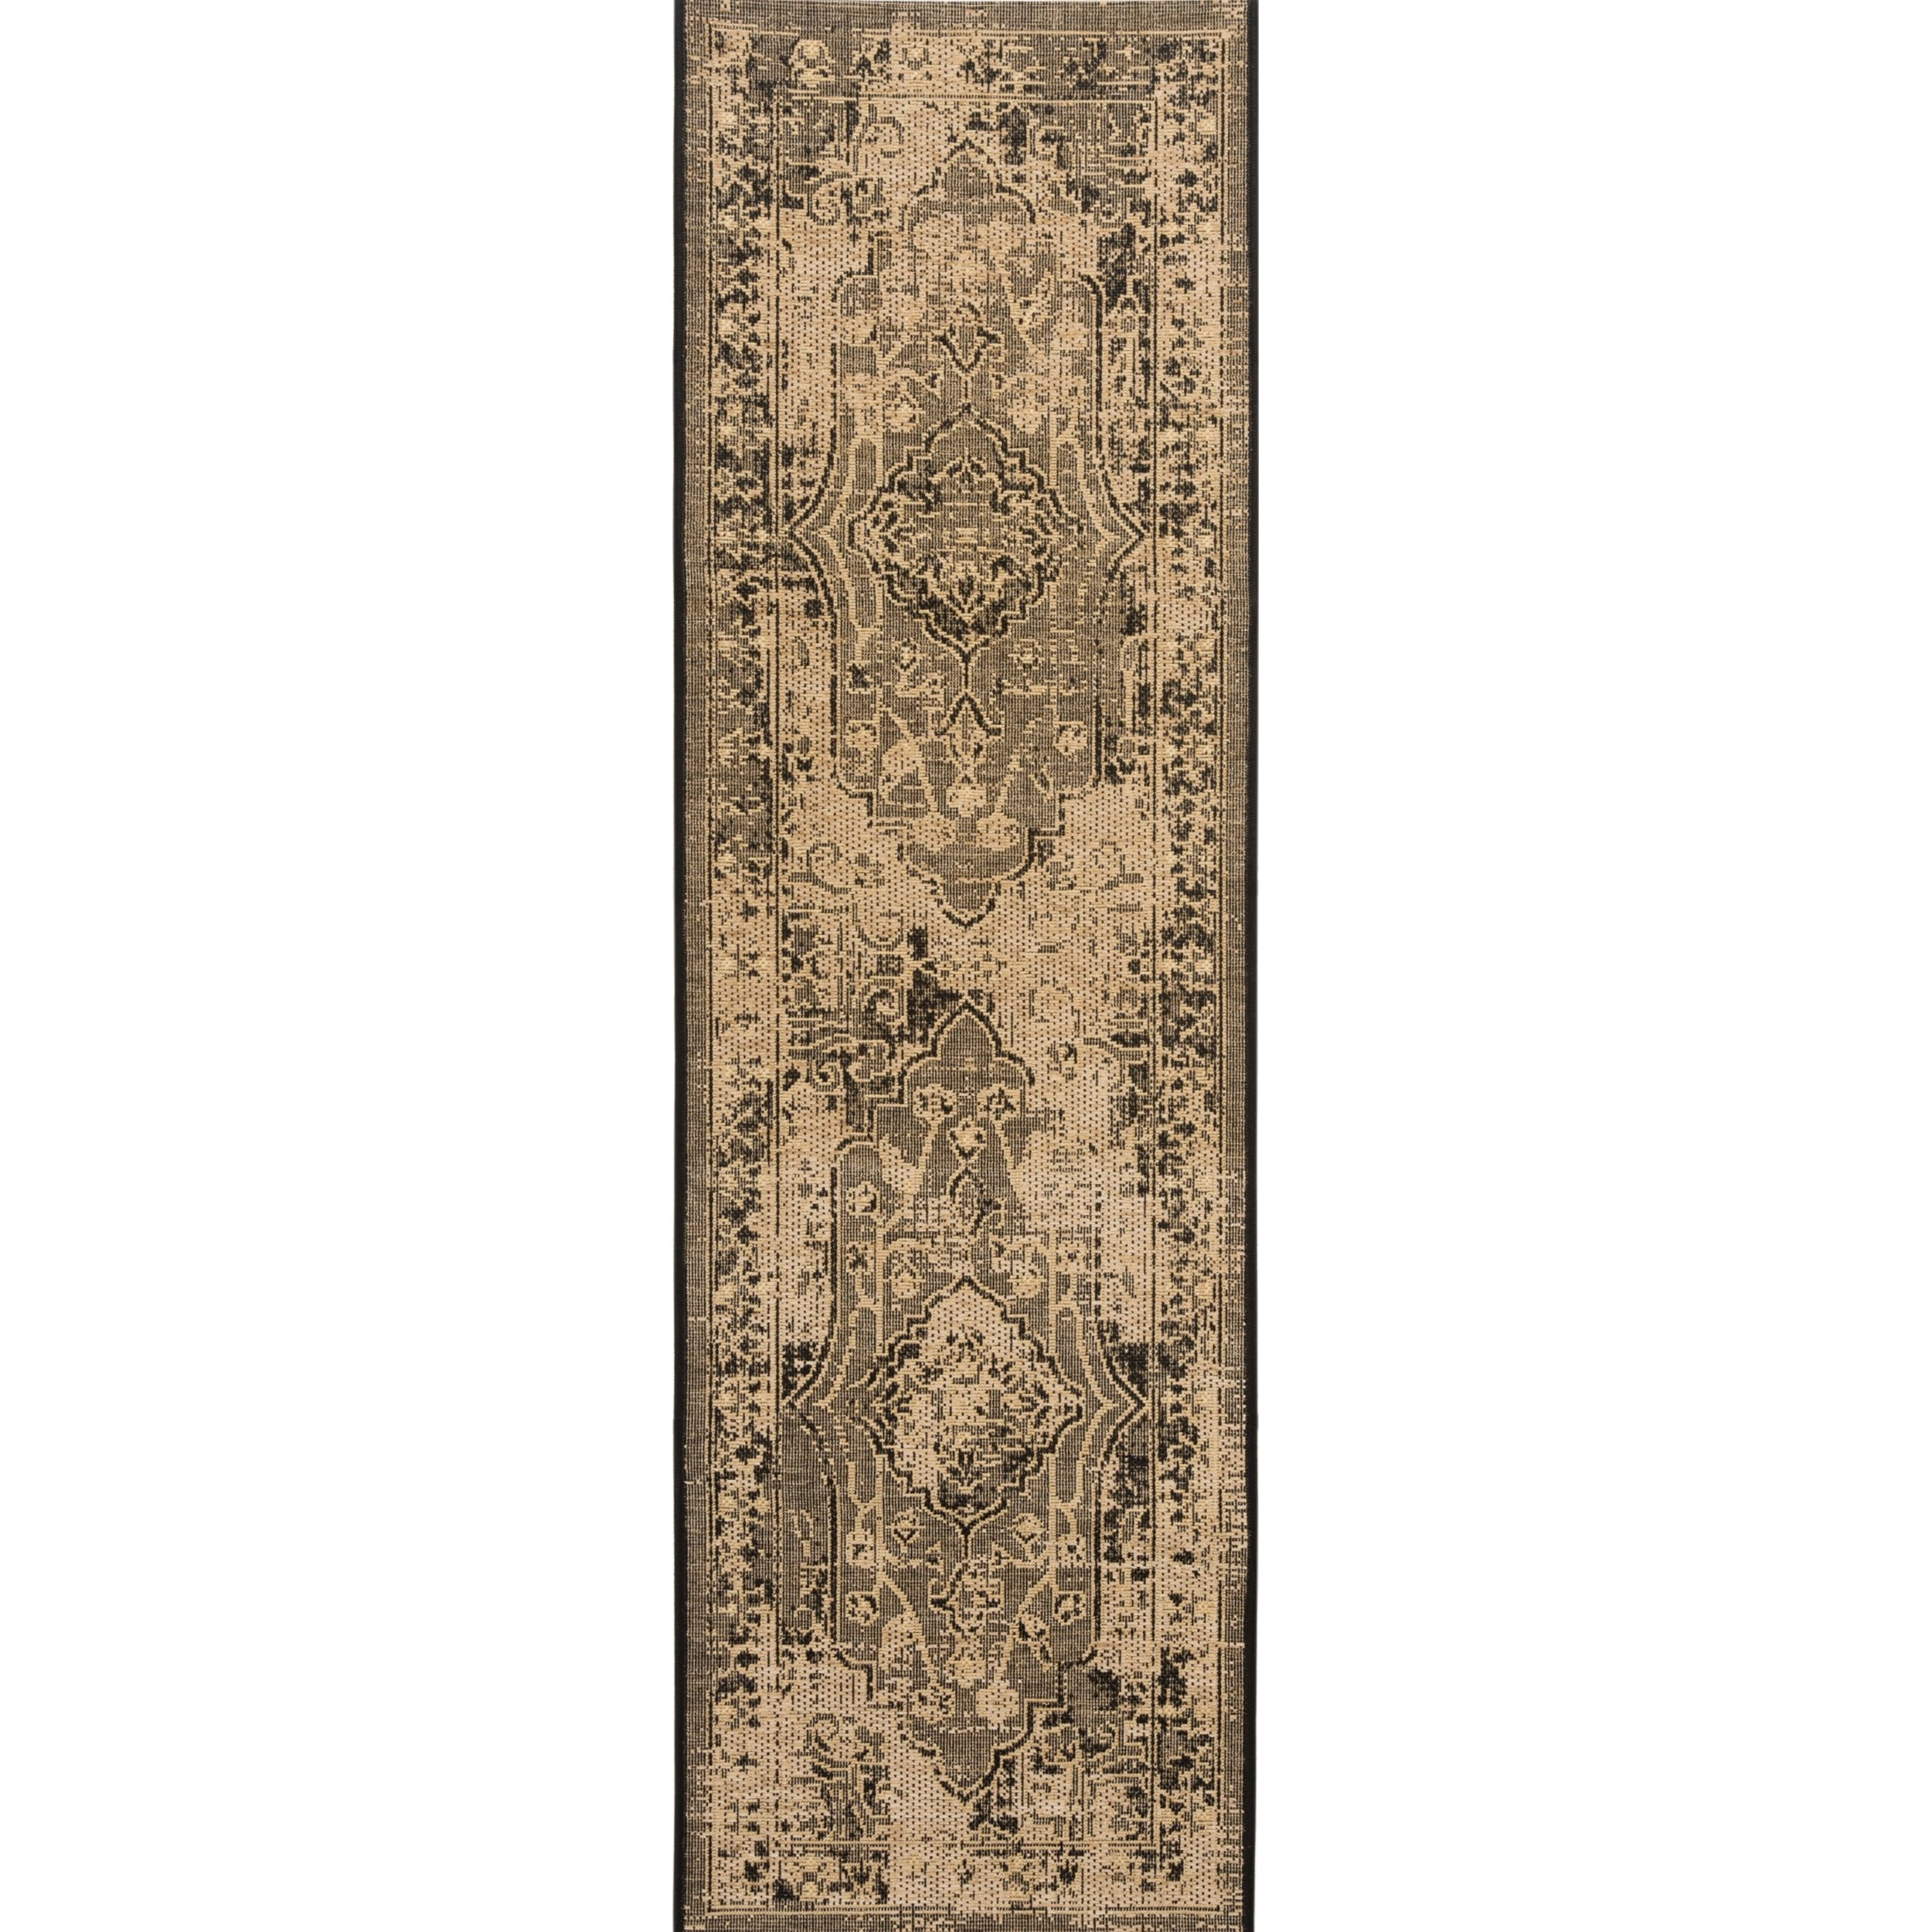 Safavieh Palazzo Collection PAL128-16211 Light Grey and Grey Runner (2' x 7'3'') by Safavieh (Image #1)